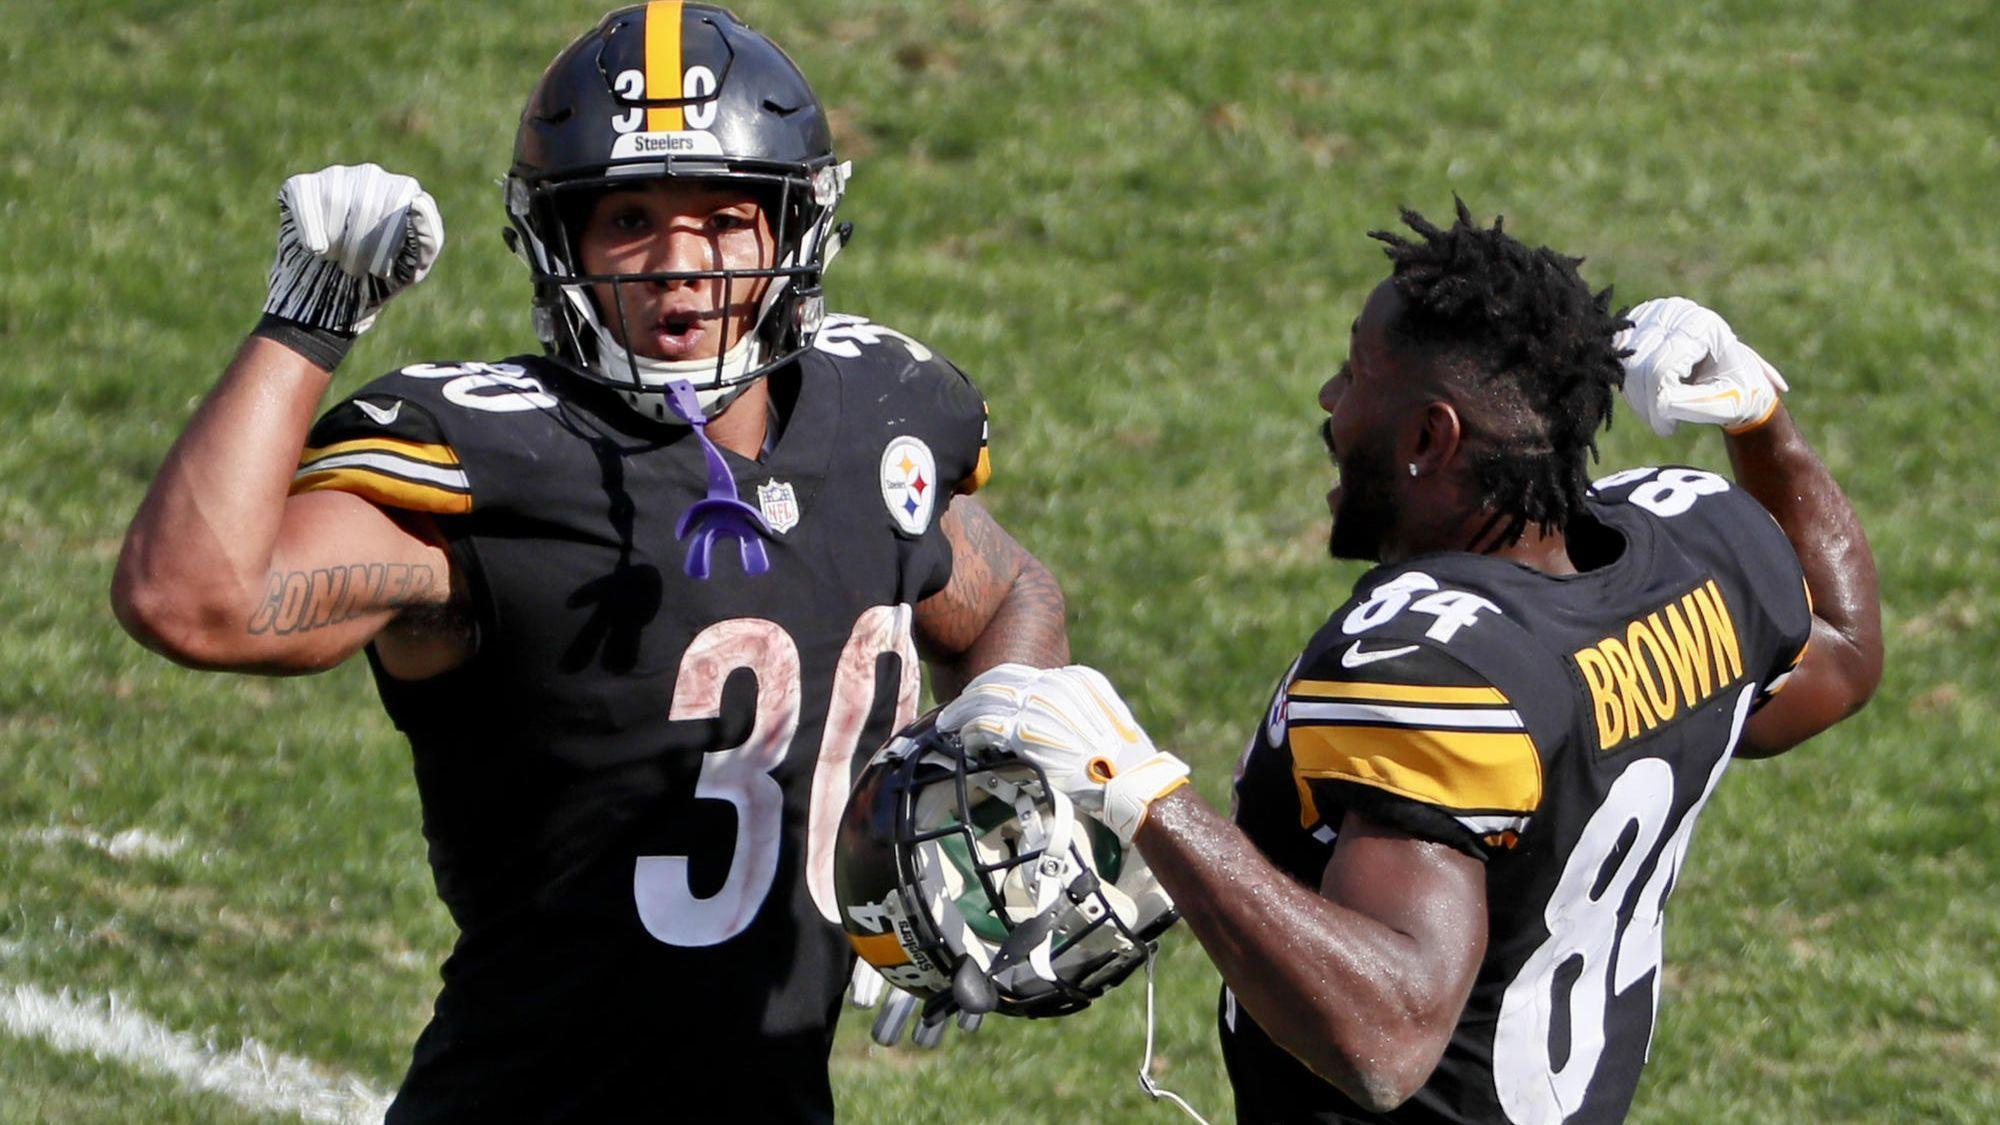 ebd87a20918 Steelers let Le Veon Bell go to free agency and are exploring Antonio Brown  trade - Chicago Tribune